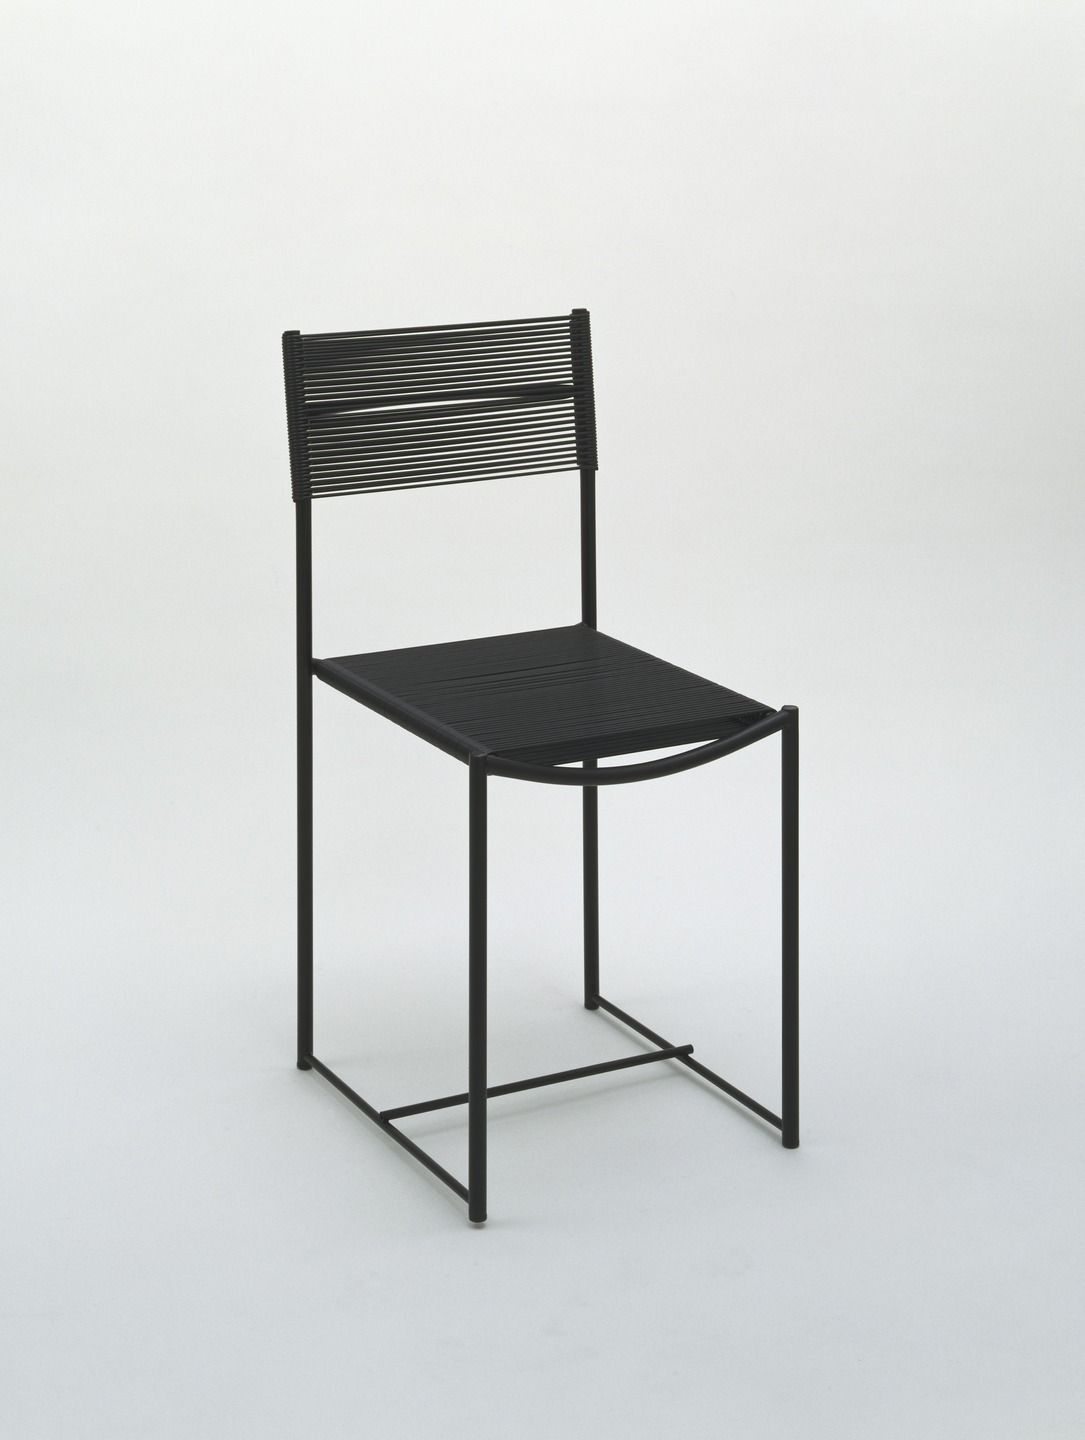 Spaghetti Chair Giandomenico Belotti 1979 Alias Courtesy Alias  # Muebles Pezzani